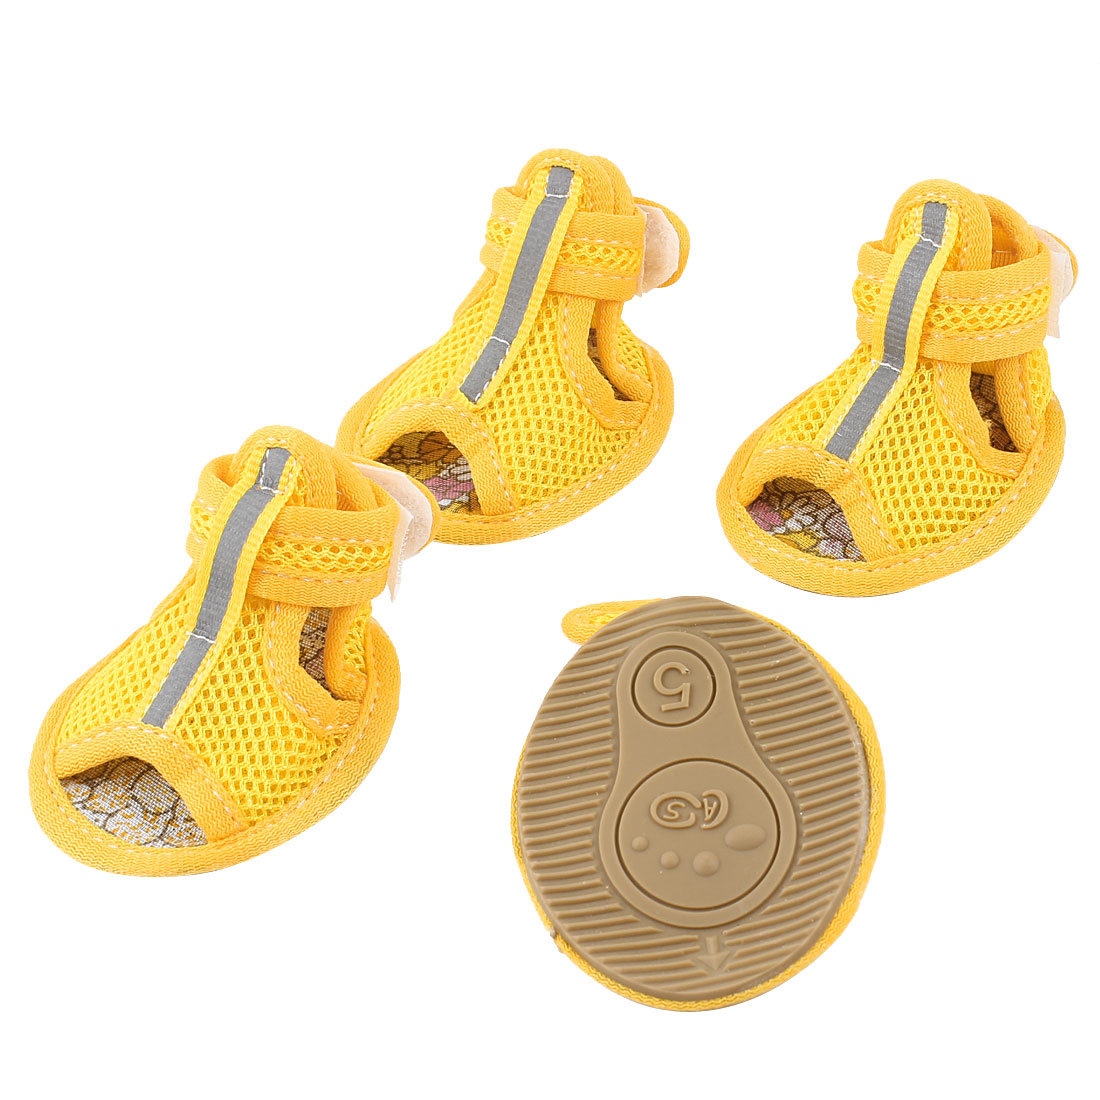 2 Pair Hook Loop Closure Pet Yorkie Dog Netty Shoes Boots Booties Yellow Size S